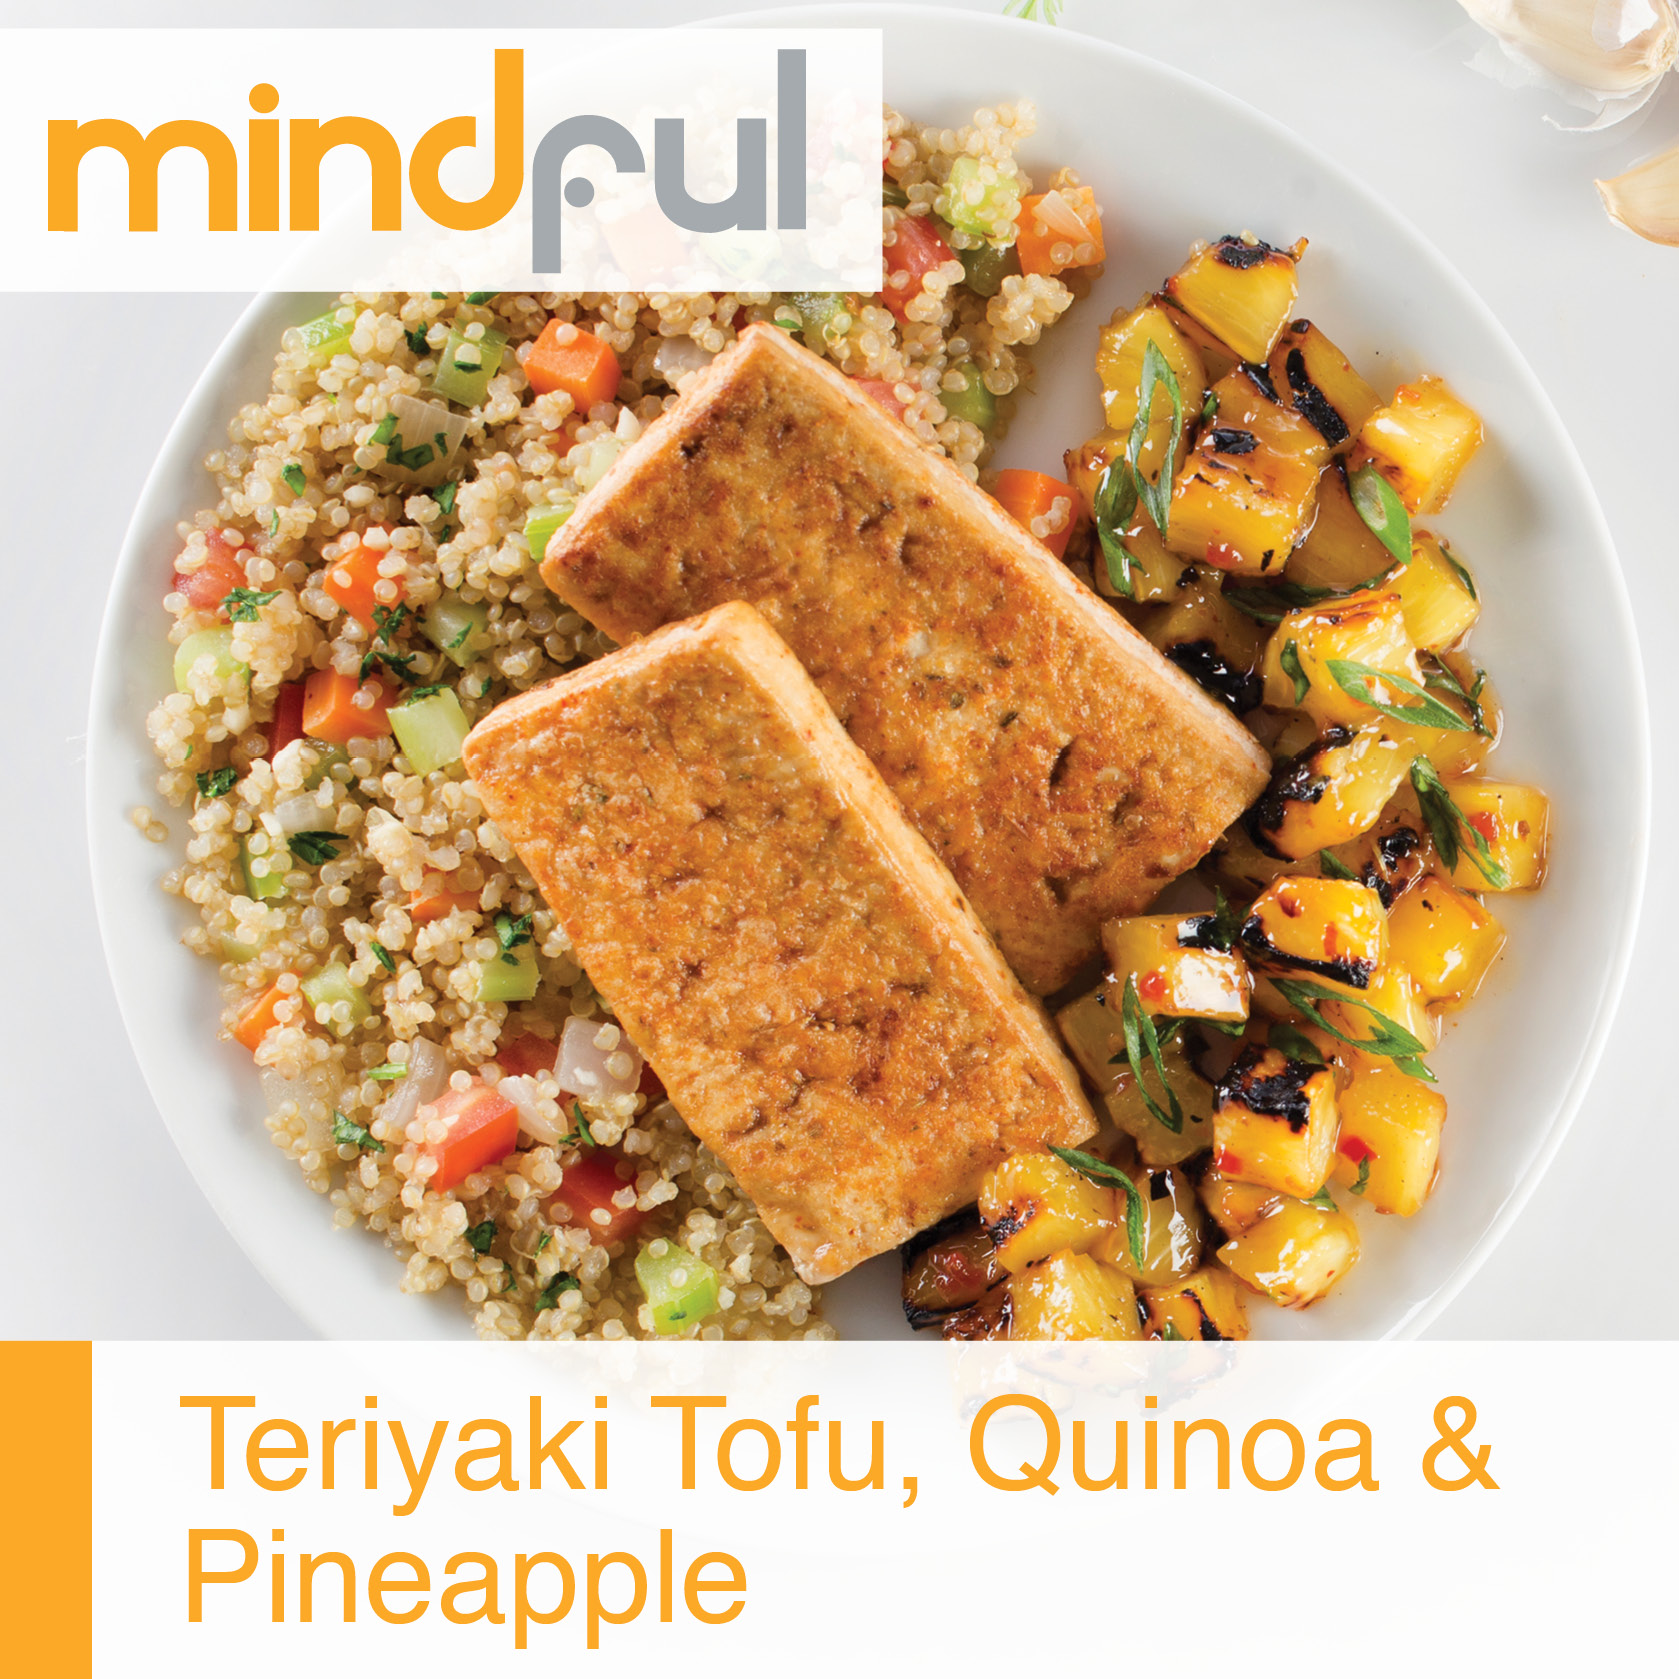 Teriyaki Tofu, Quinoa and Pineapple